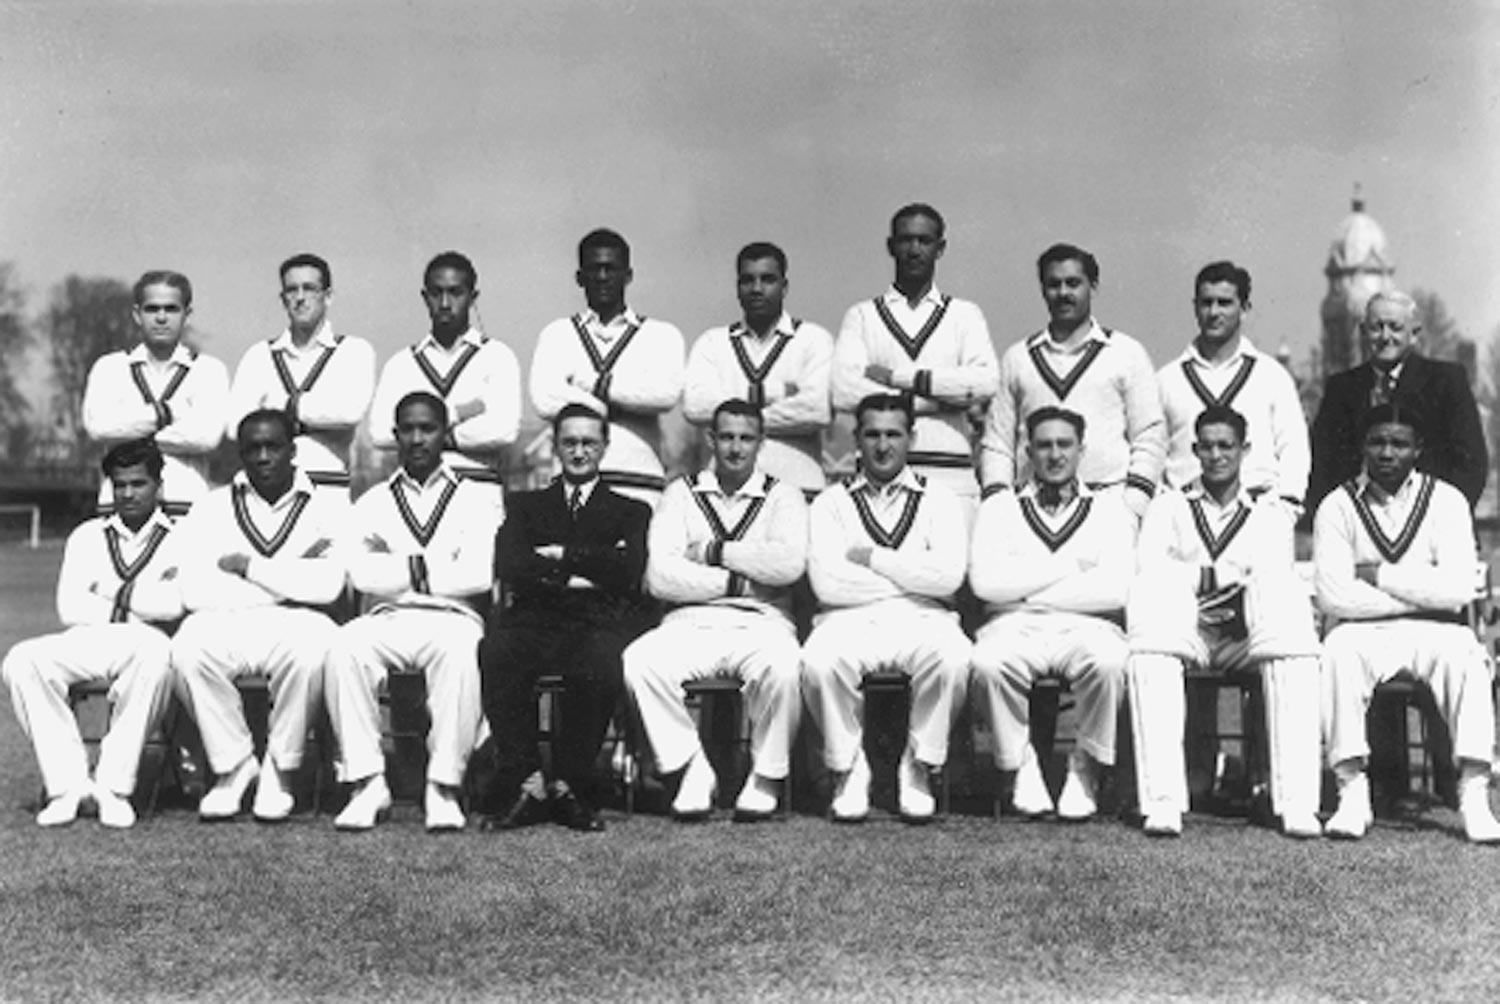 The 1950 West Indies touring side. Photograph by Douglas Miller/Keystone/Getty Images